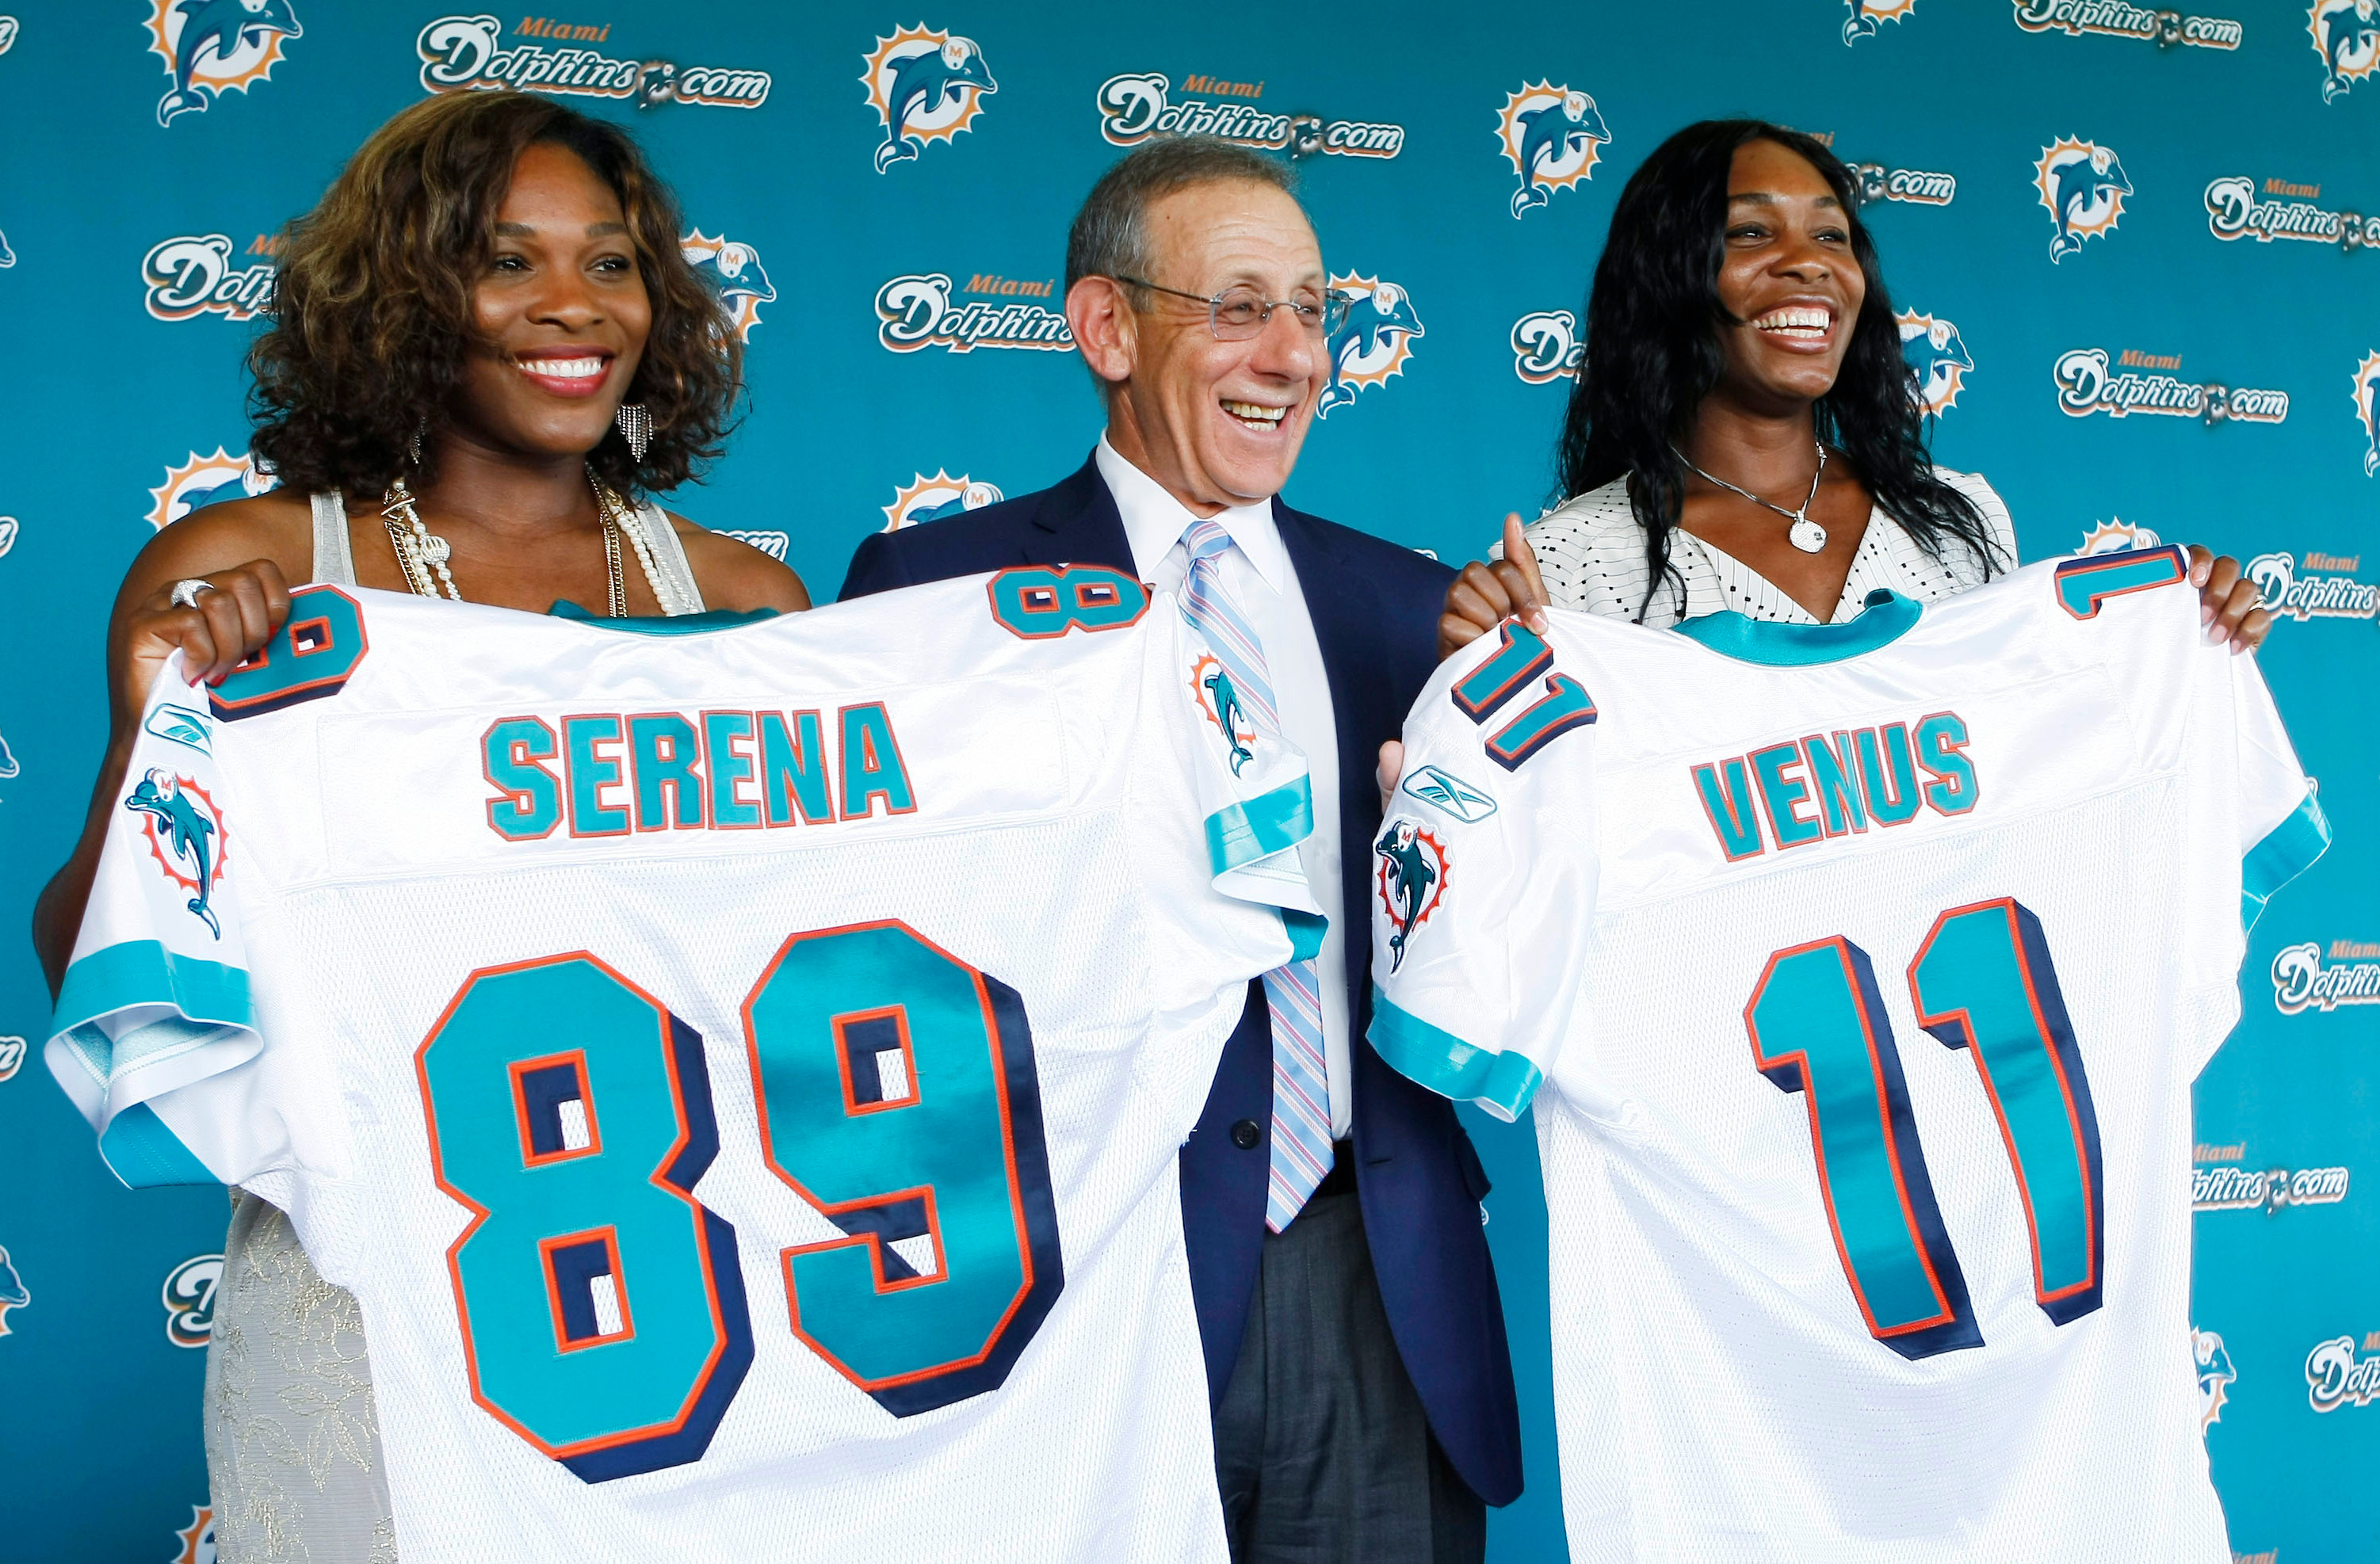 Venus Williams, Serena Williams, Stephen Ross. Miami Dolphins owner Stephen Ross, center, stands between Serena, left, and Venus Williams after it was announced the tennis stars had become minority owners of the NFL football team, during a news conference at the team's training complex in Davie, FlaDolphins Williams Sisters Football, Davie, USA - 25 Aug 2009